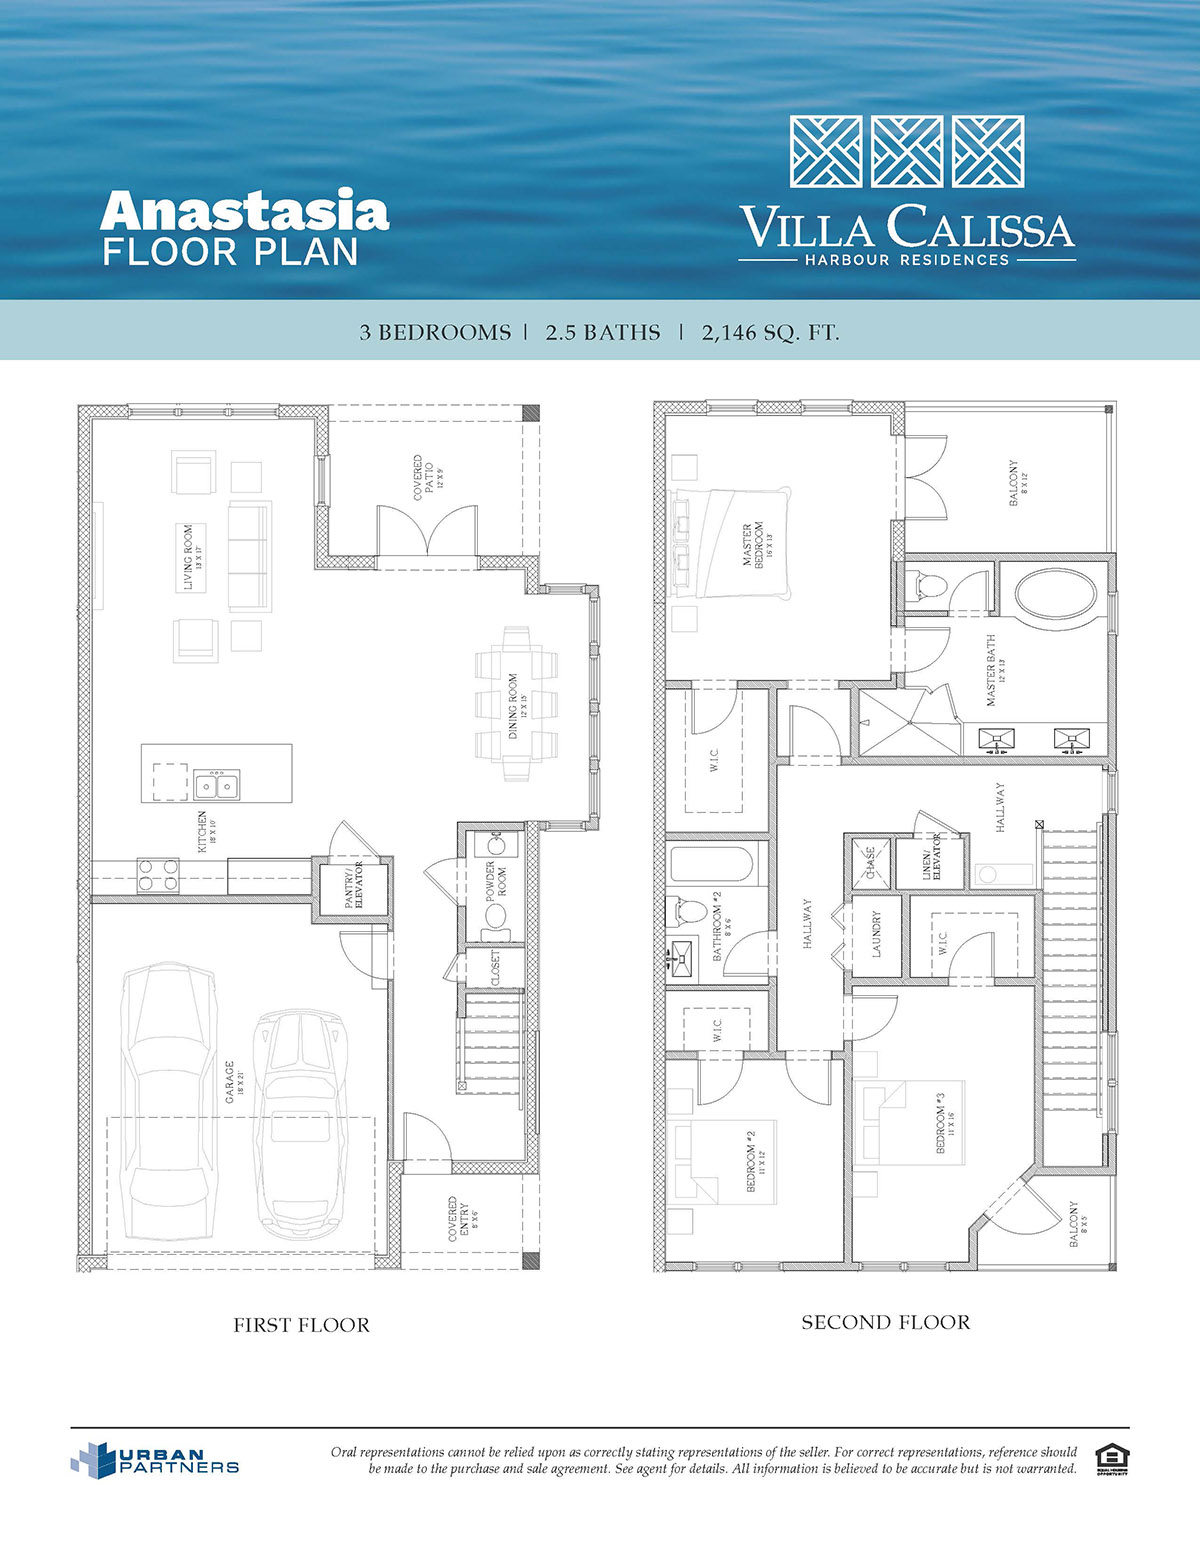 Anastasia floor plan at Villa Calissa